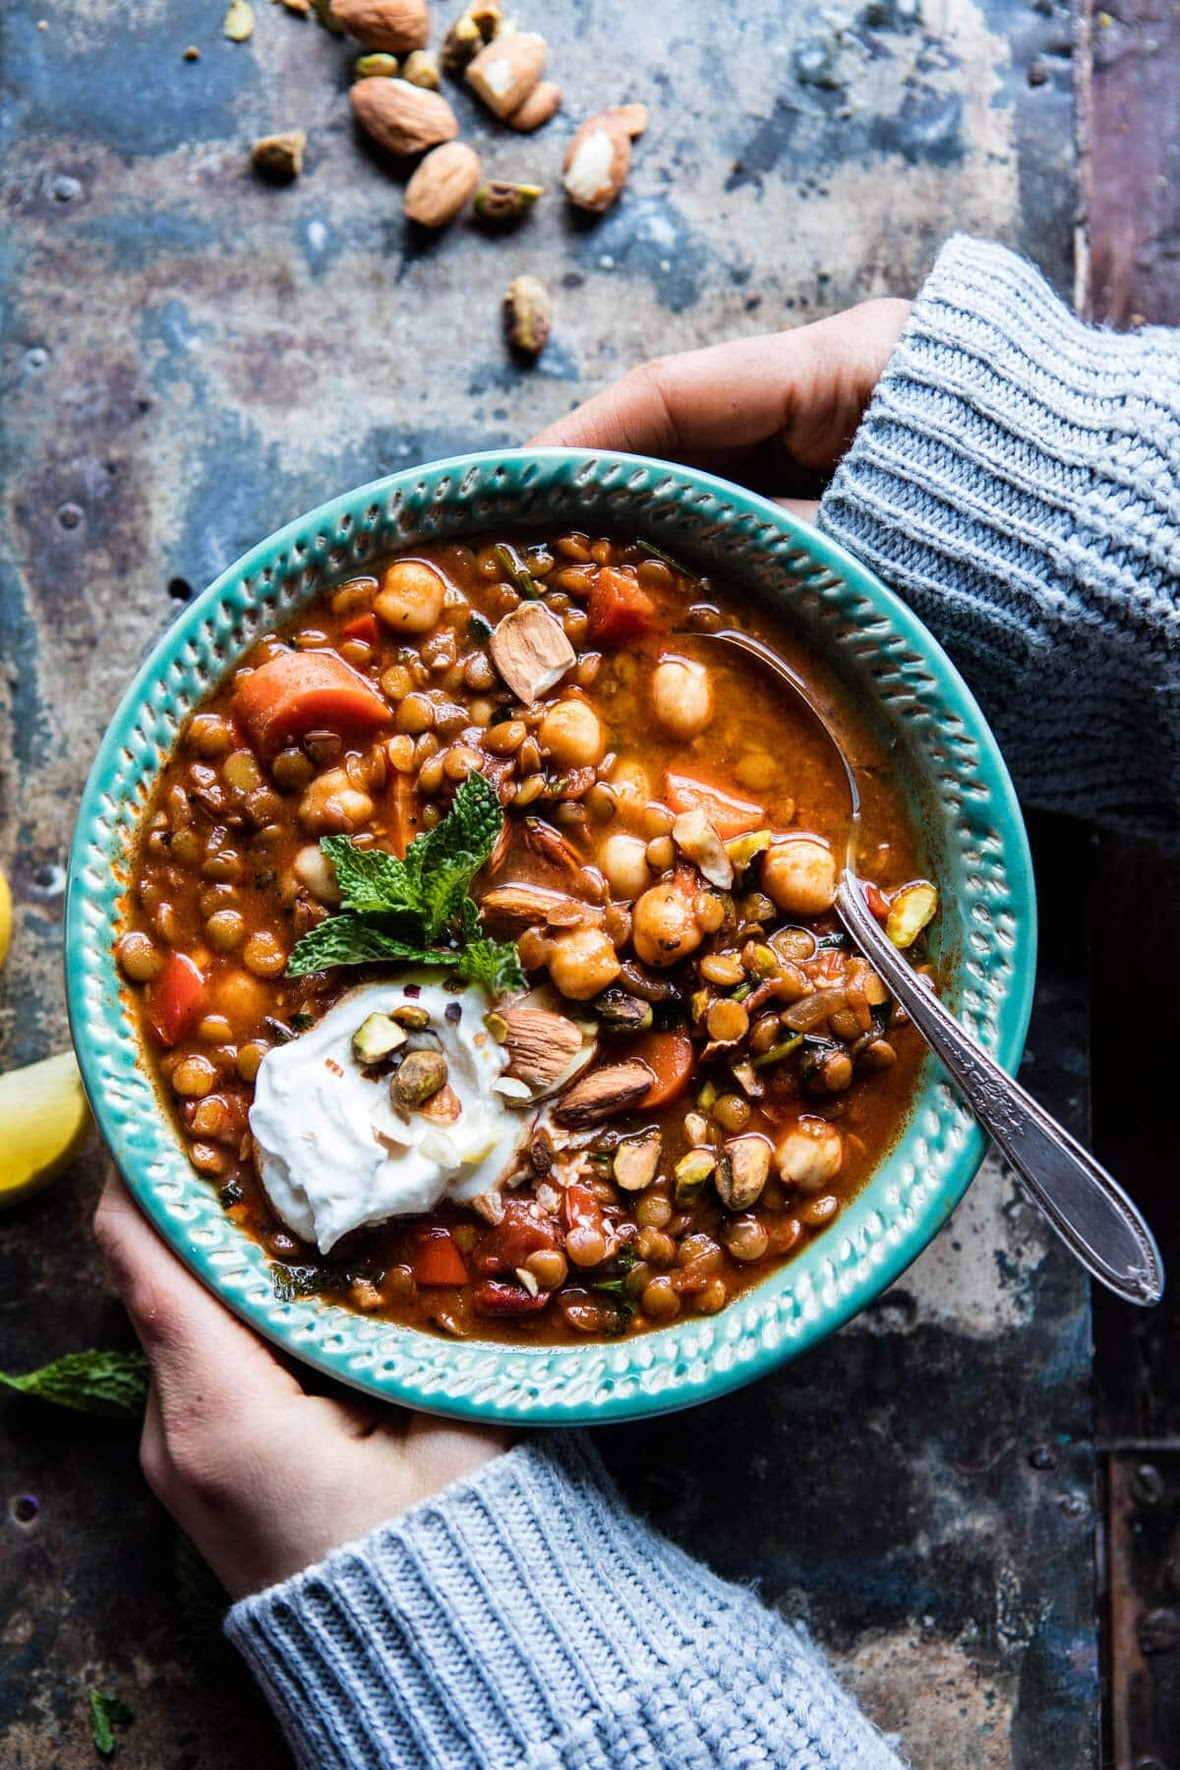 Crockpot-Moroccan-Lentil-and-Chickpea-Soup-1